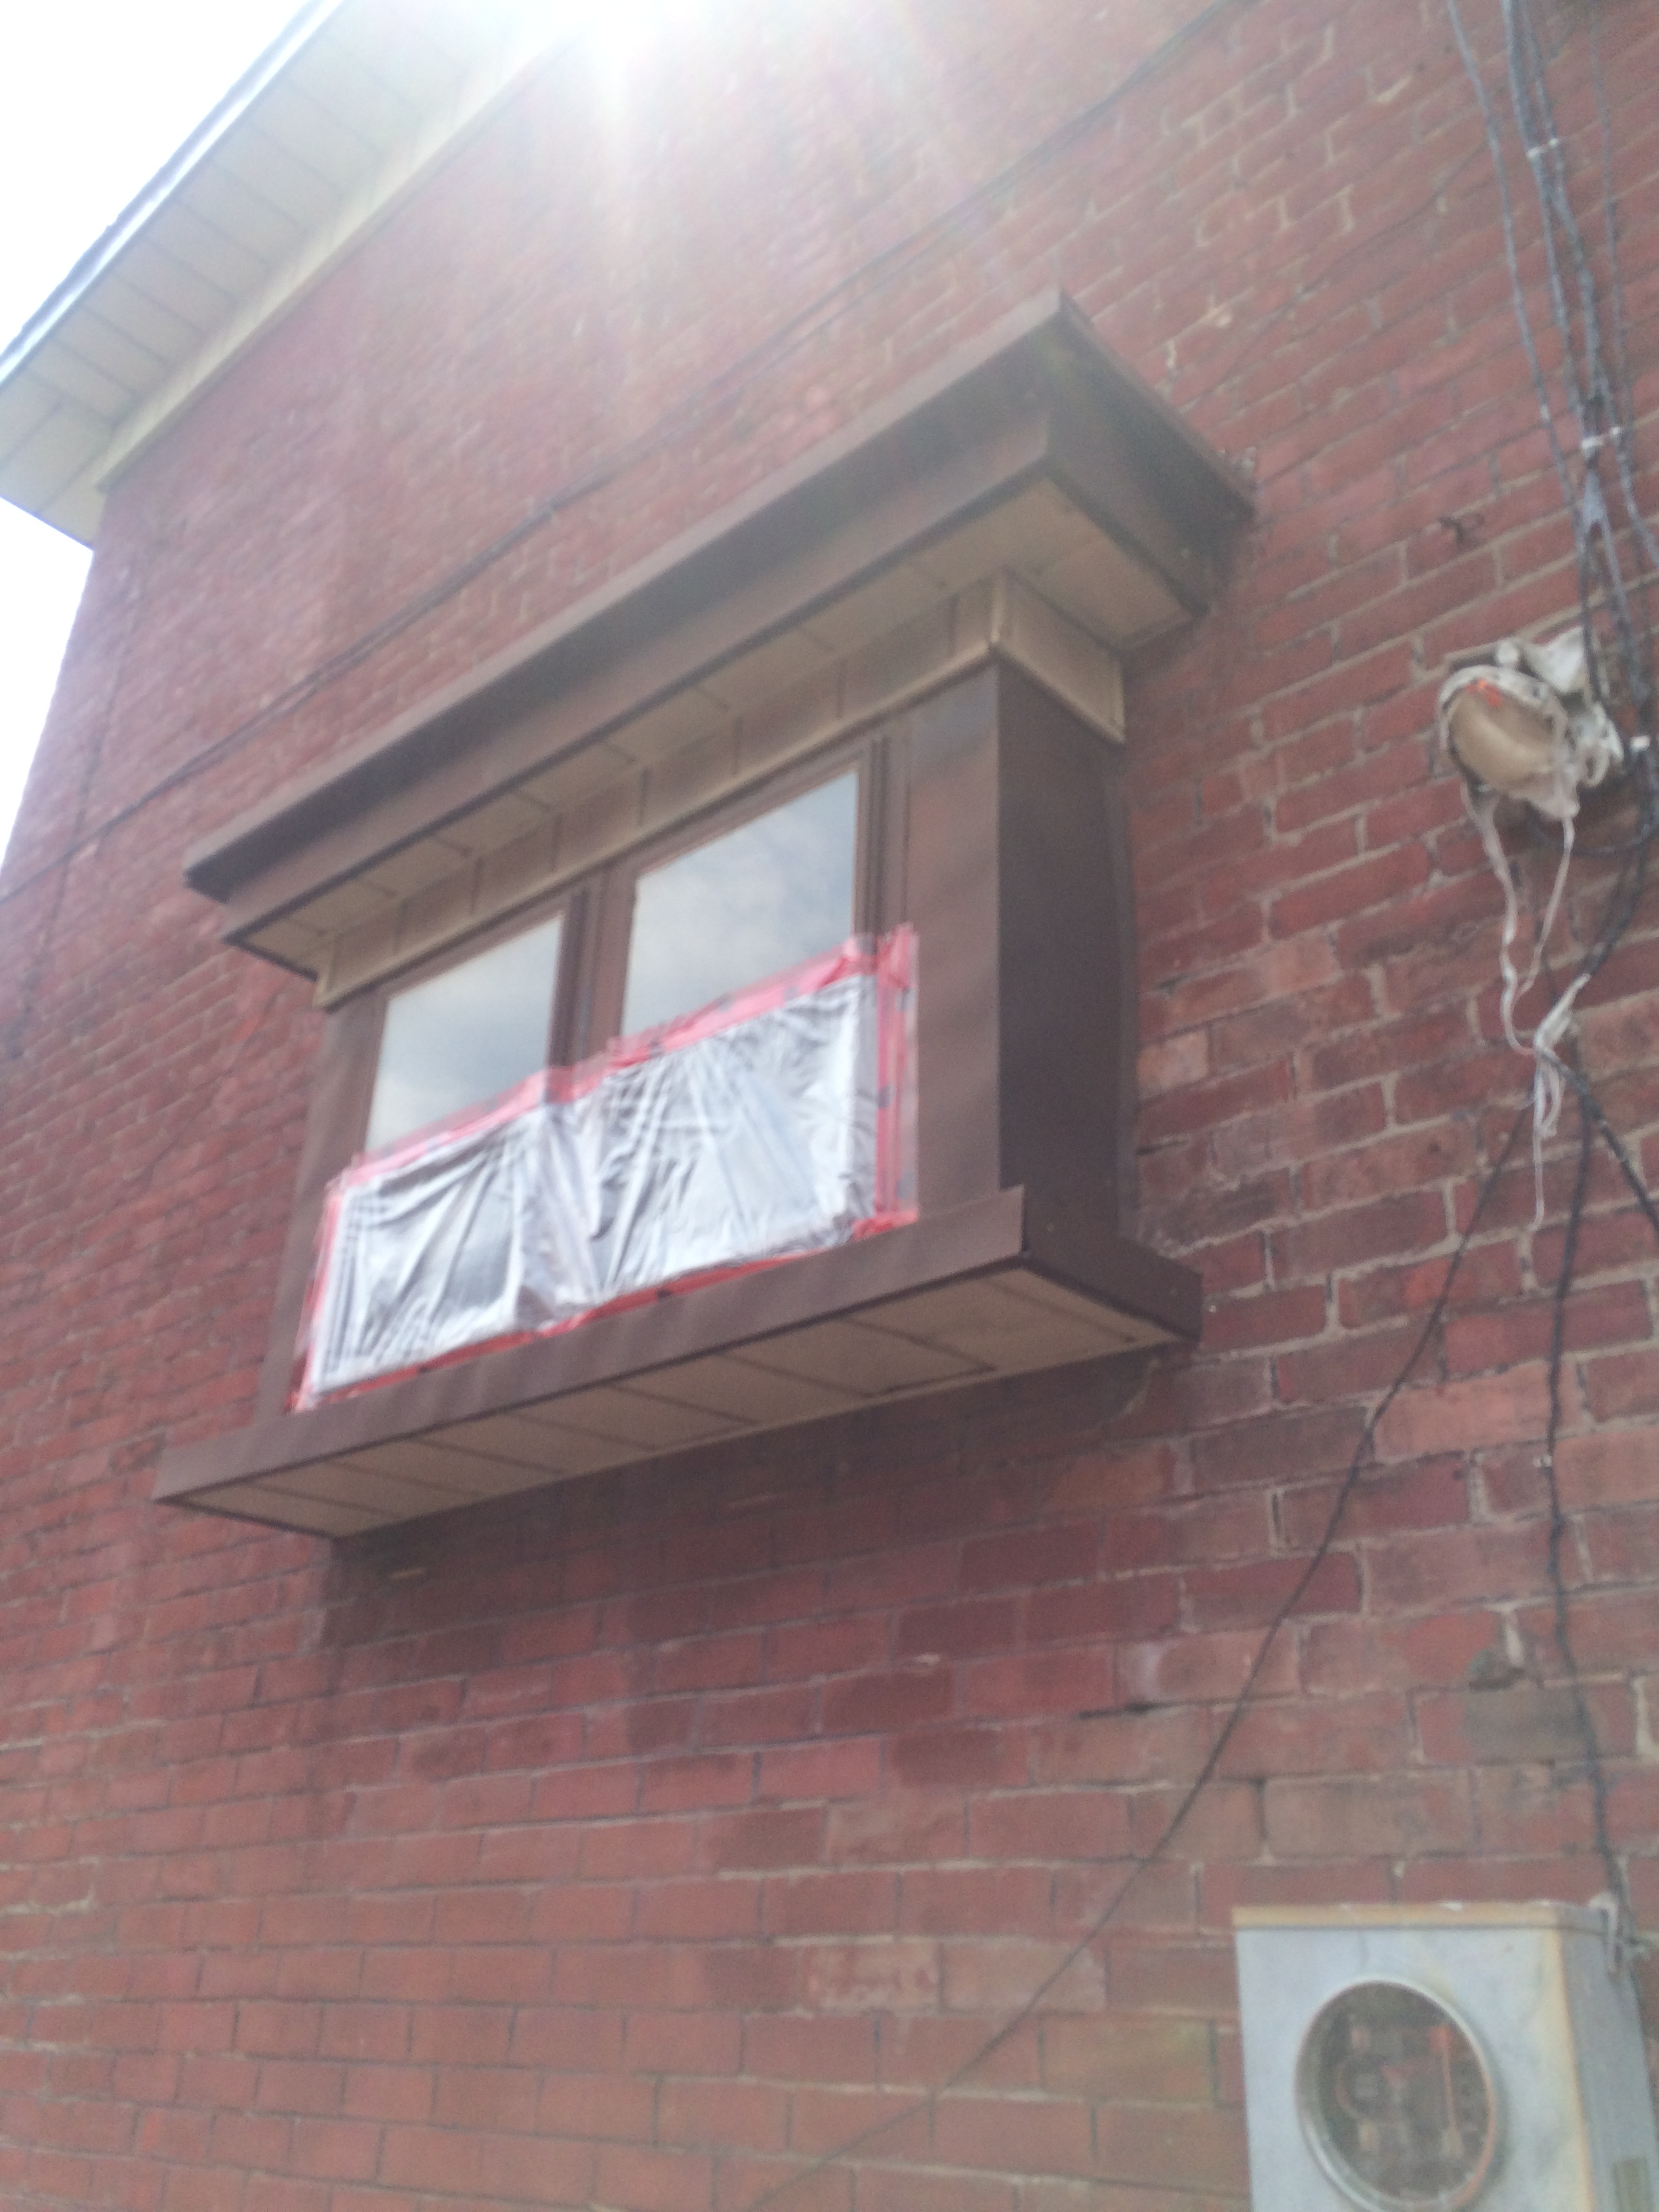 Fire Damage To Bay Window In Toronto Roofing Repair